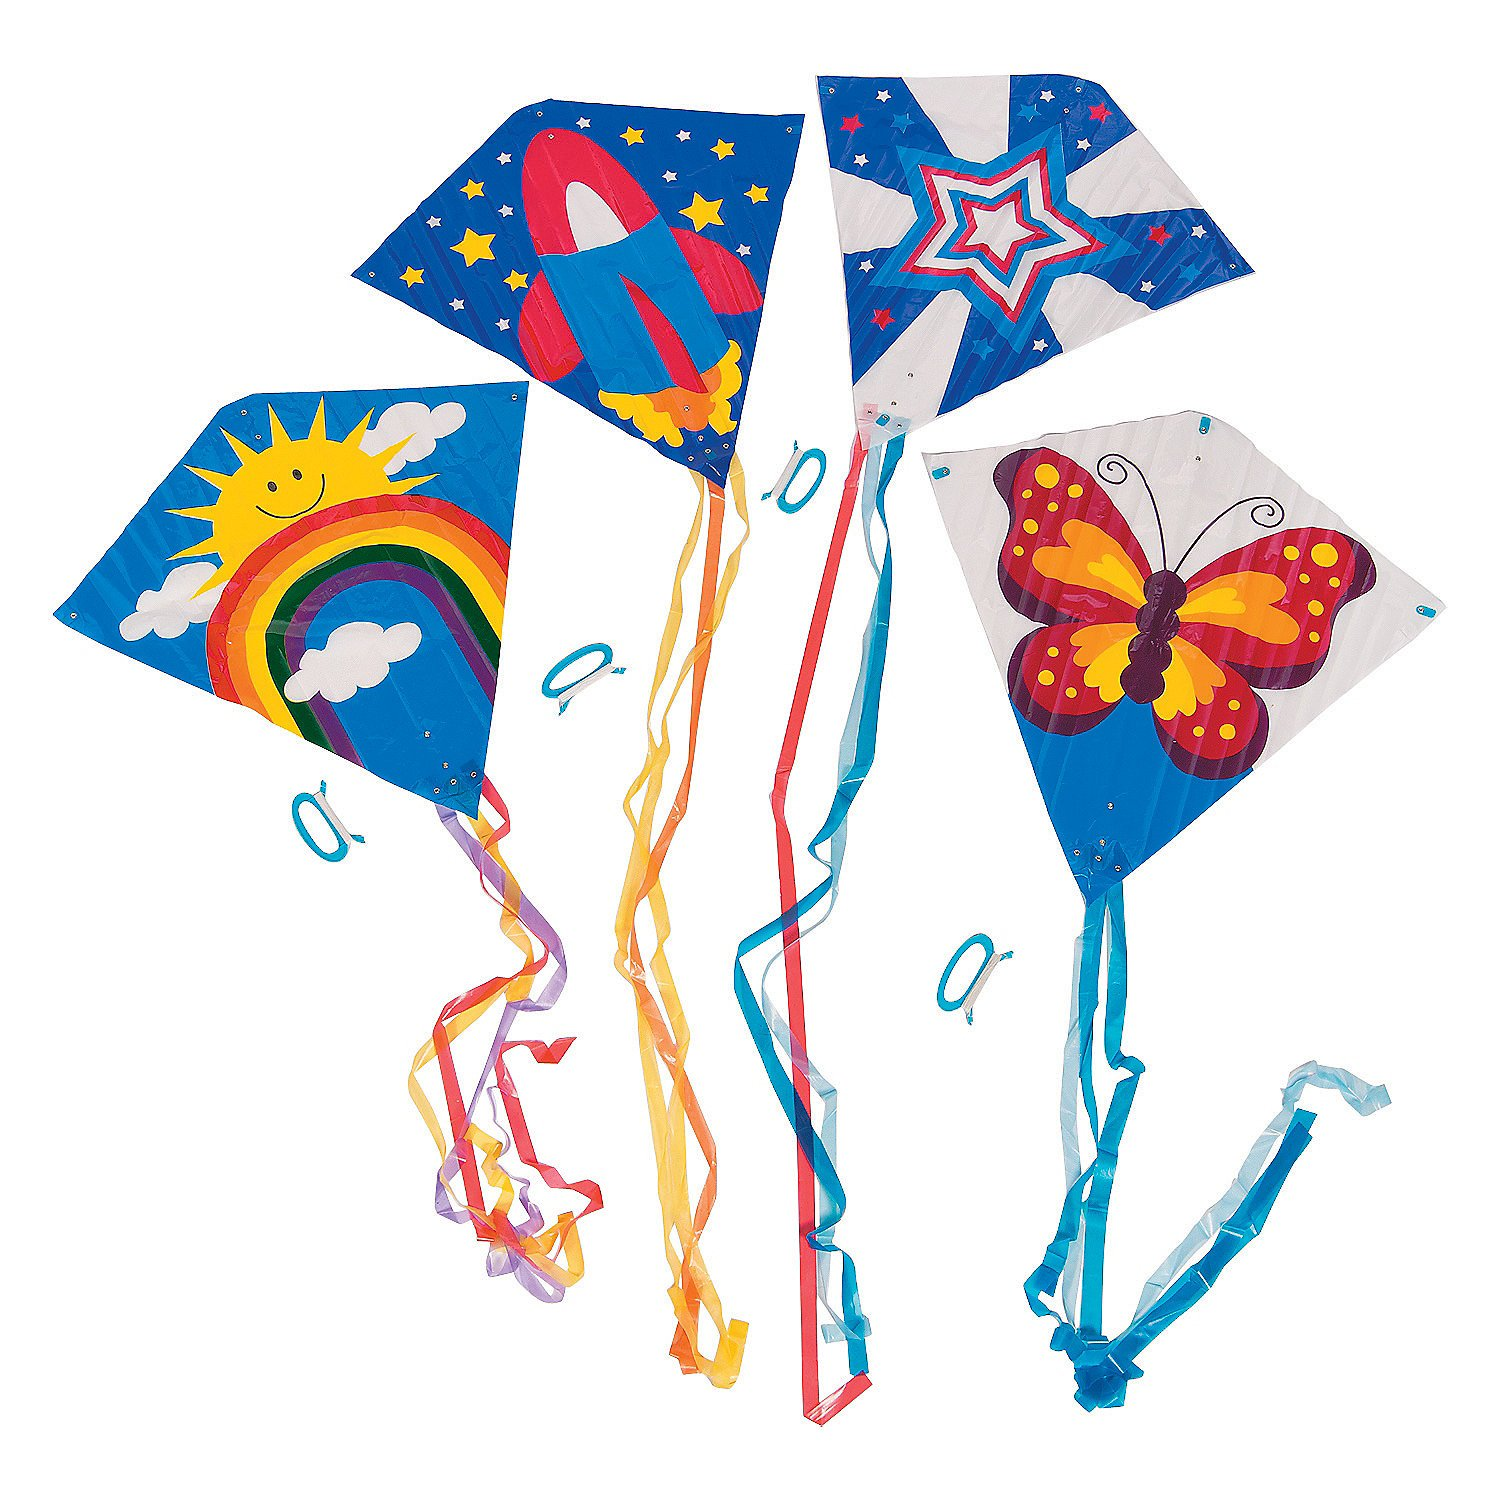 Fun Express Assorted Flying Kite Pack 28 x 28in with 54 in Tails - Assorted Styles and Colors - 200 ft of String with Handle - 12 Pieces by Fun Express